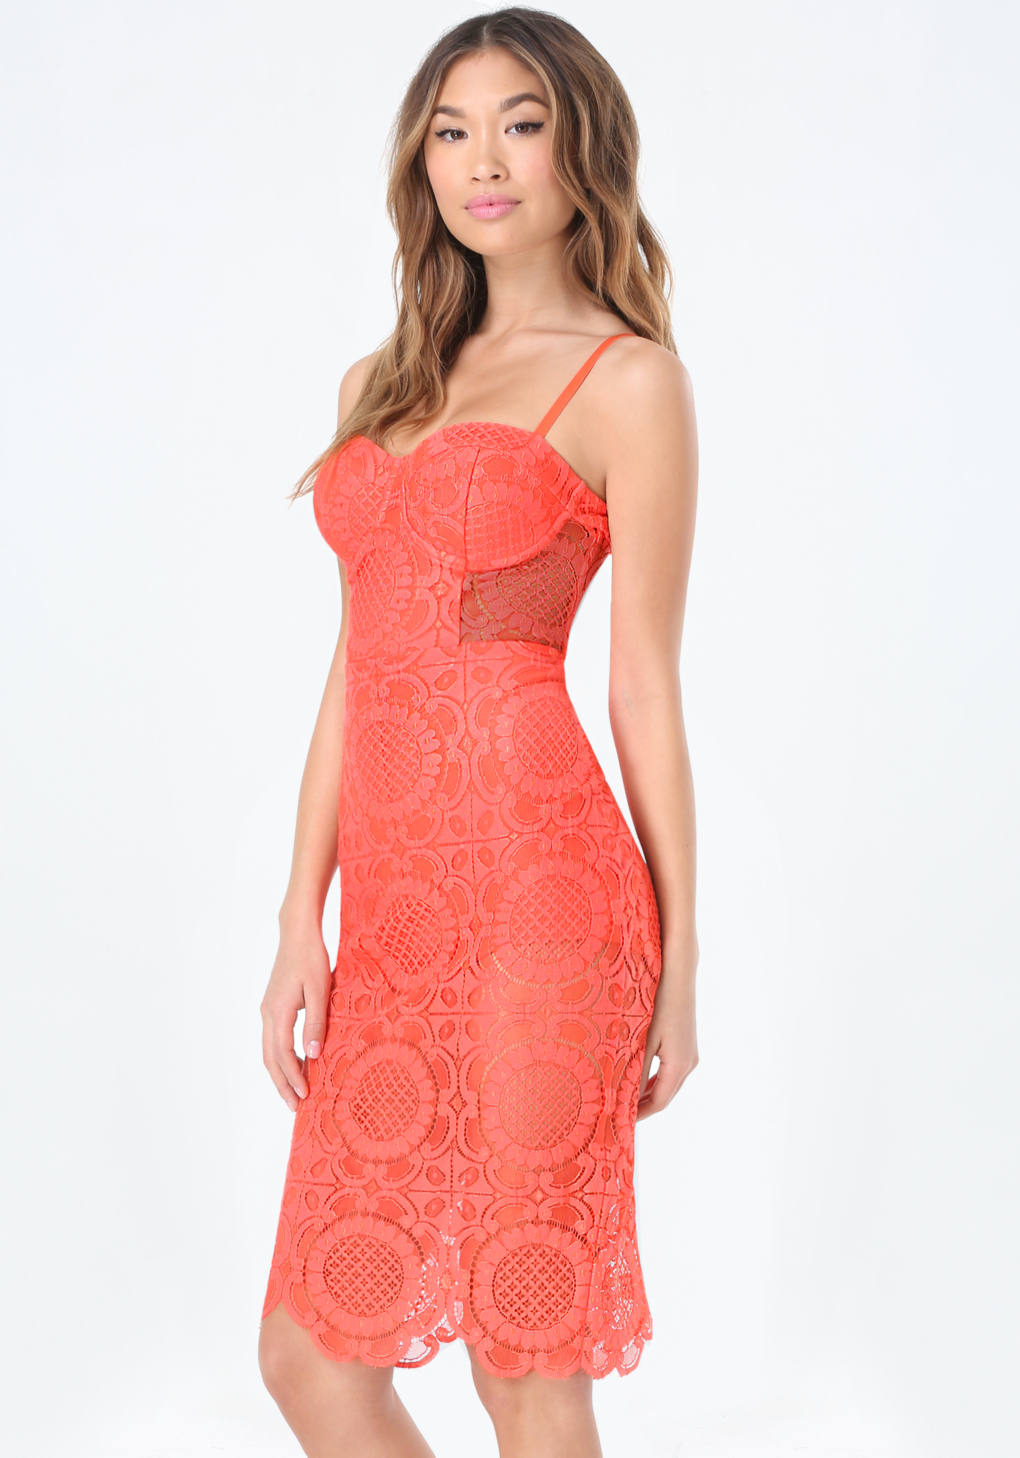 cad99ce58f18 Bebe Lace Bustier Dress in Pink - Lyst